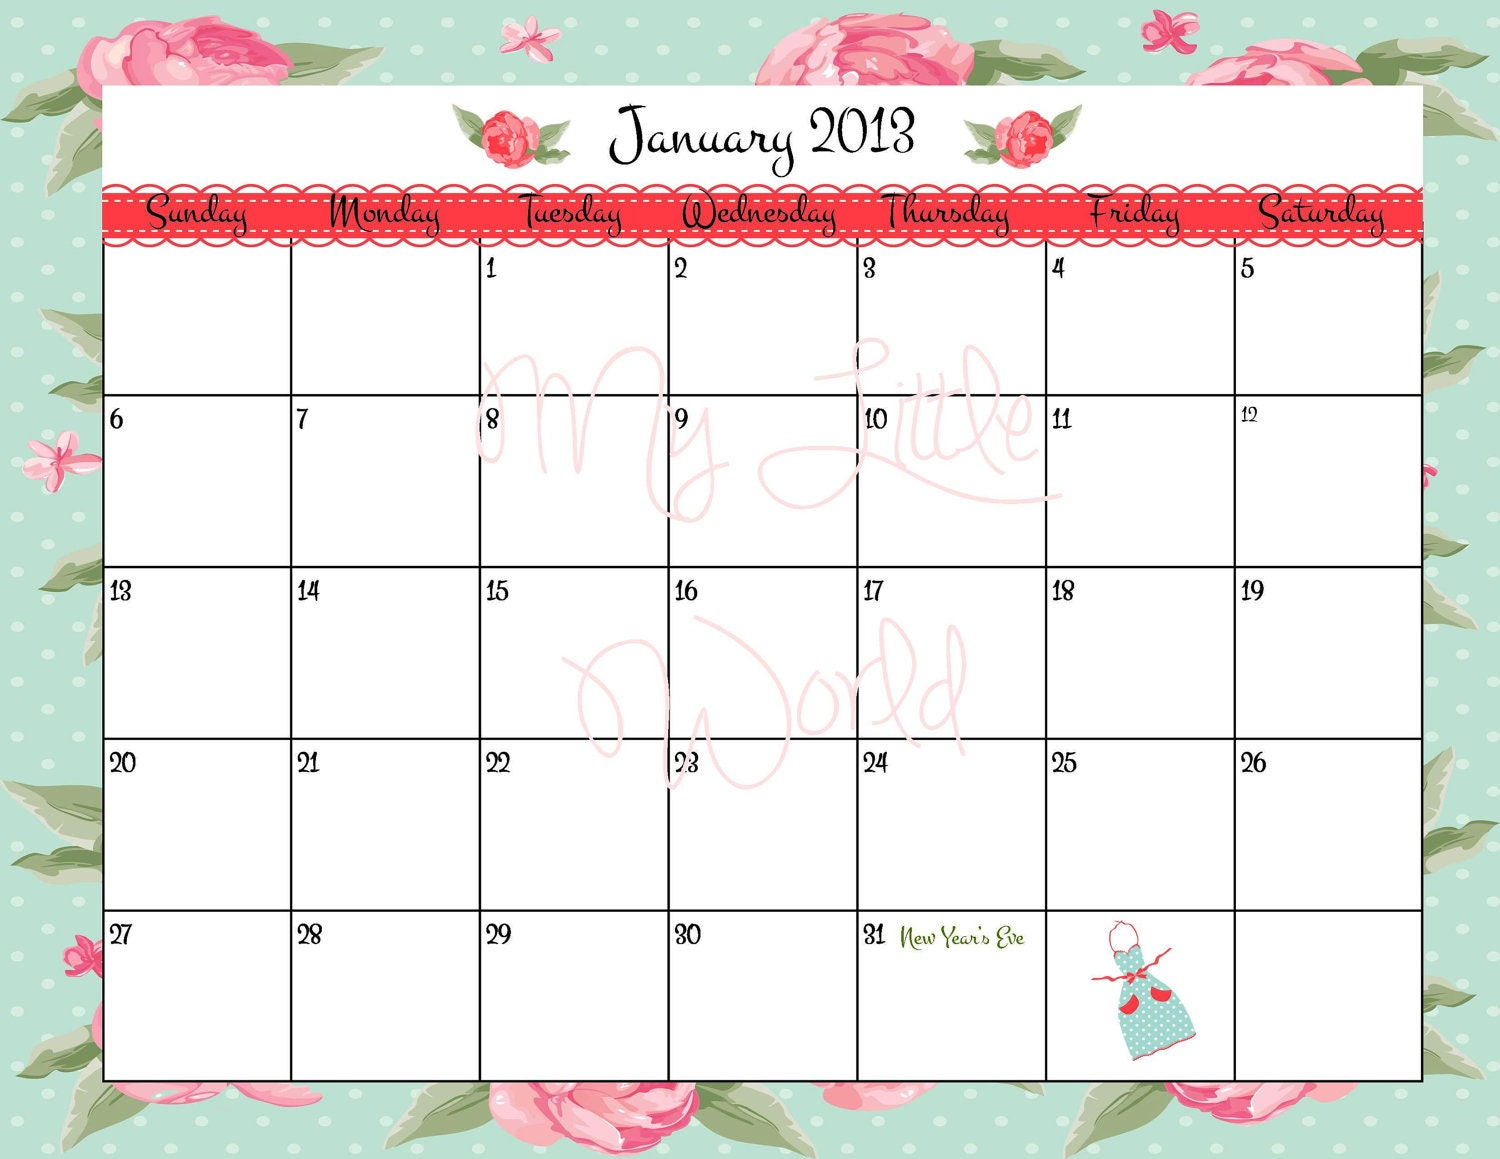 Store > Calendars > Wall Calendar > Calendar Styles. My saved projects Help; Customer Service Order Status How to Upload % Happiness Guaranteed Promotion Details Shipping Download Shutterfly app Shutterfly, Inc. OPEN. Stay Connected. Sign in Get help Send feedback Full site.